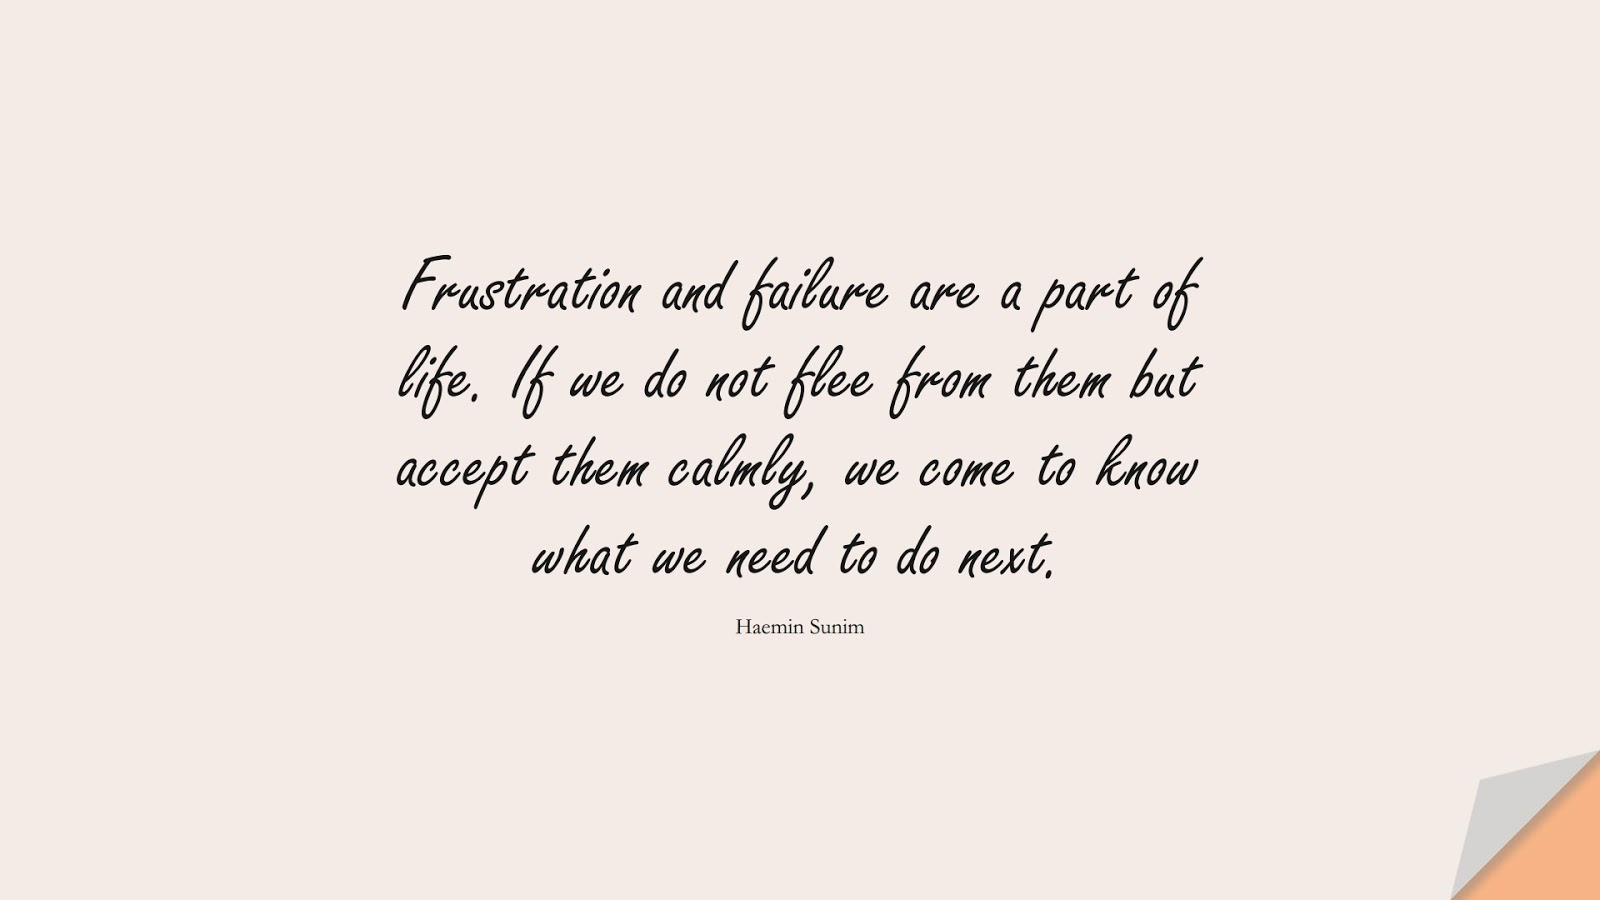 Frustration and failure are a part of life. If we do not flee from them but accept them calmly, we come to know what we need to do next. (Haemin Sunim);  #CalmQuotes